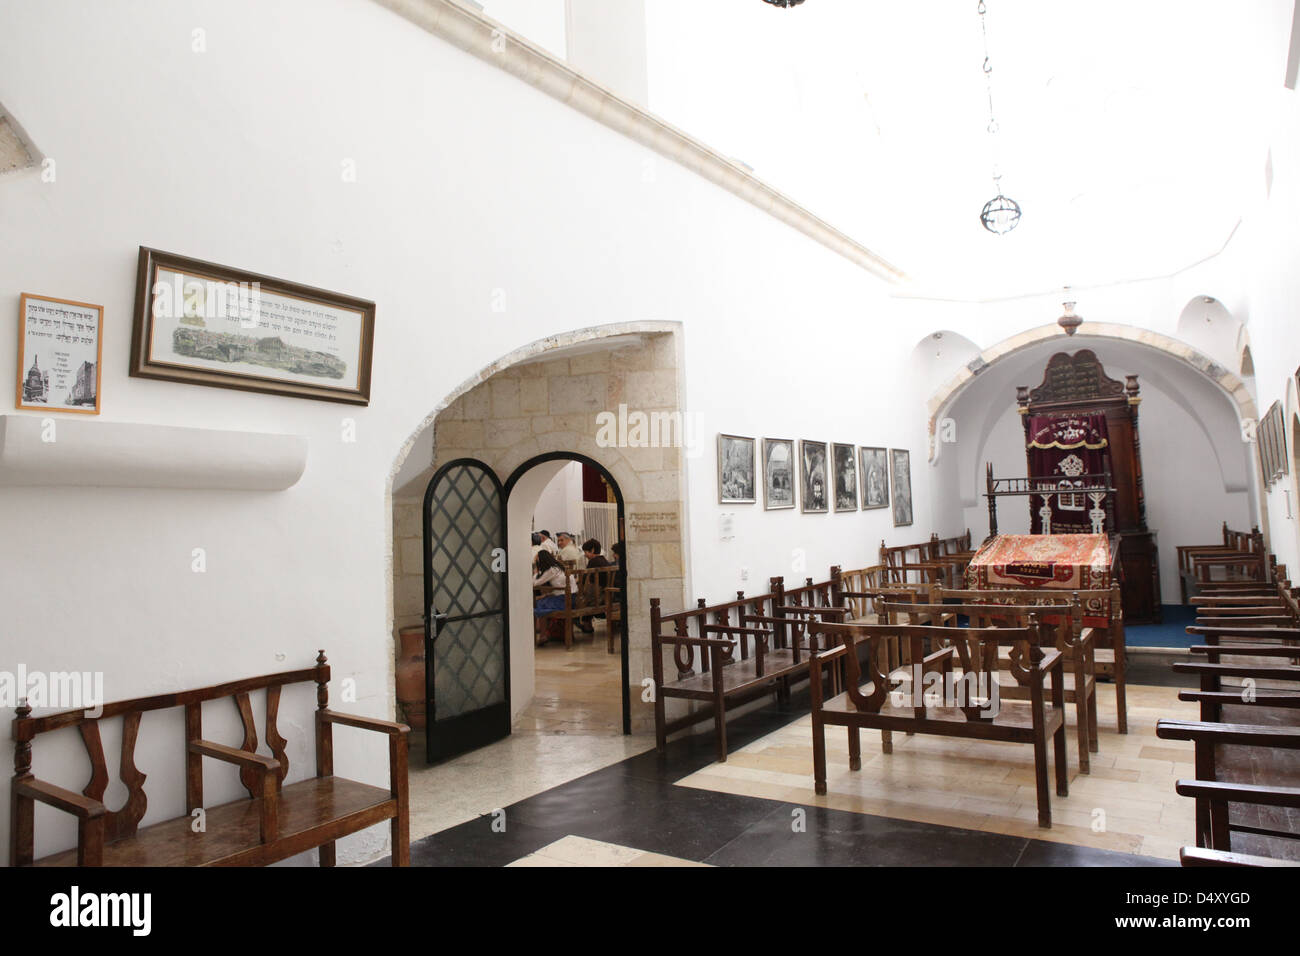 Israel, Jerusalem, Old City, Jewish Quarter, the Four Sephardic Synagogues complex. Emtsai Synagogue or Middle Synagogue - Stock Image